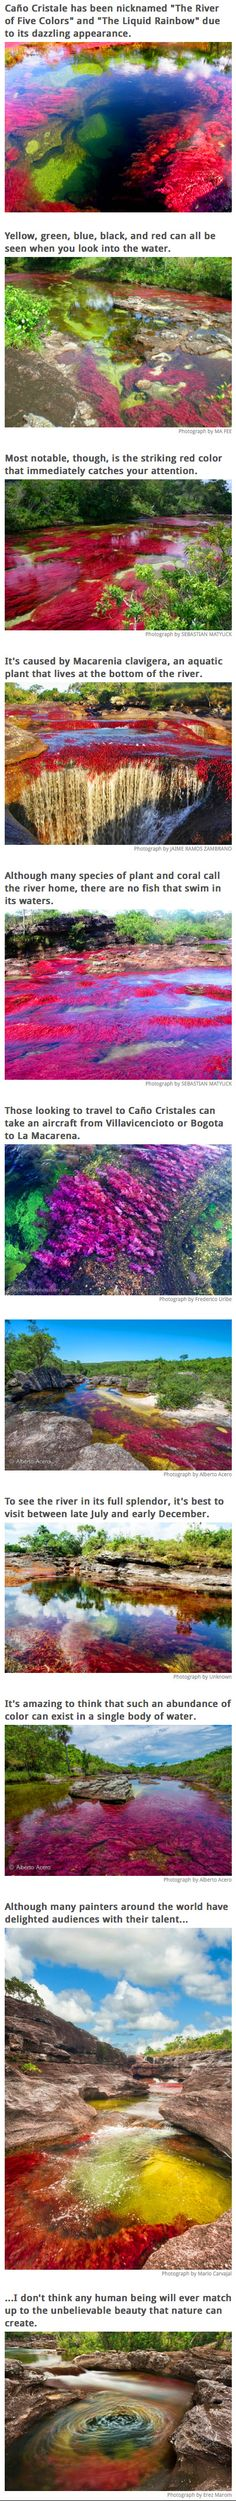 Caño Cristale is a river in Meta, Colombia in the province of Serrania de la Macarena. But this is no ordinary river. The colors that can be seen here have caused the river to be deemed by many as the most beautiful in the world... and when you see the pictures, you might be inclined to agree.